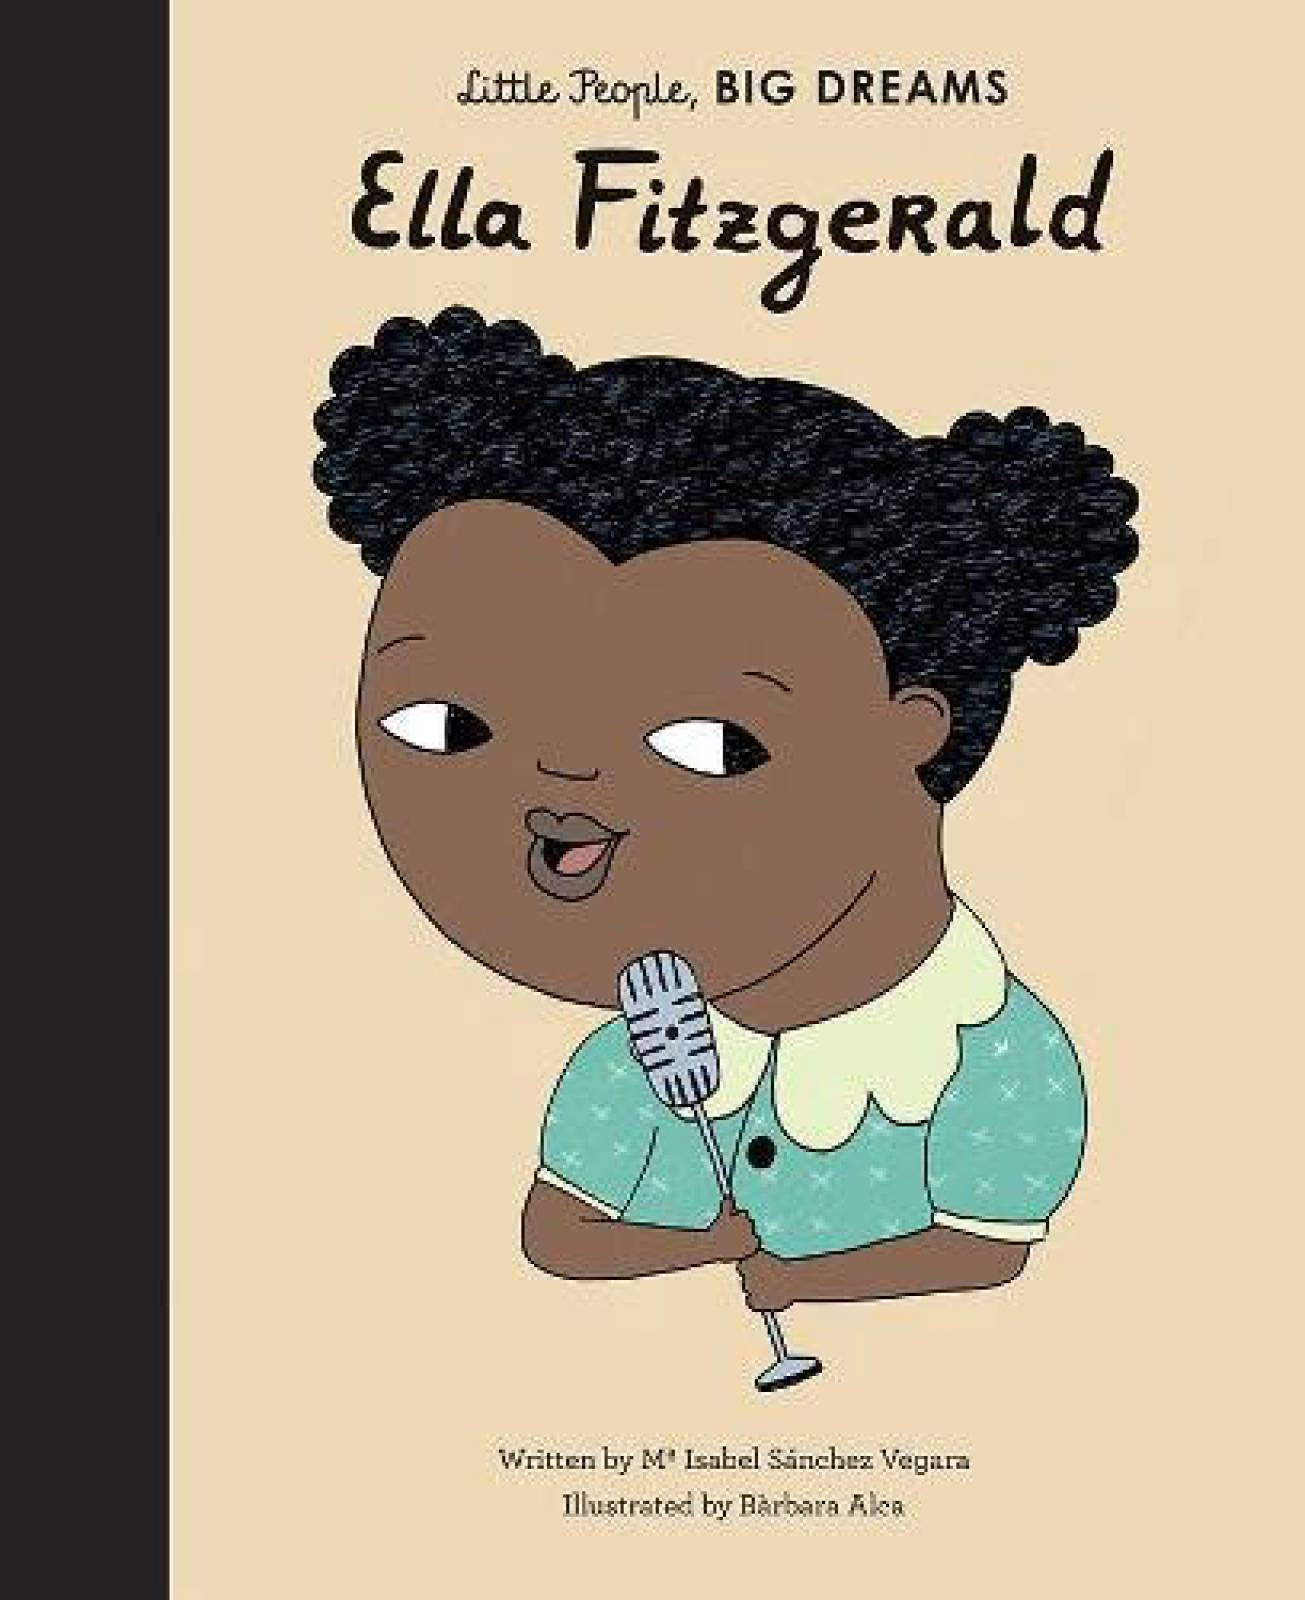 Ella Fitzgerald - Little People Big Dreams - Hardback Book